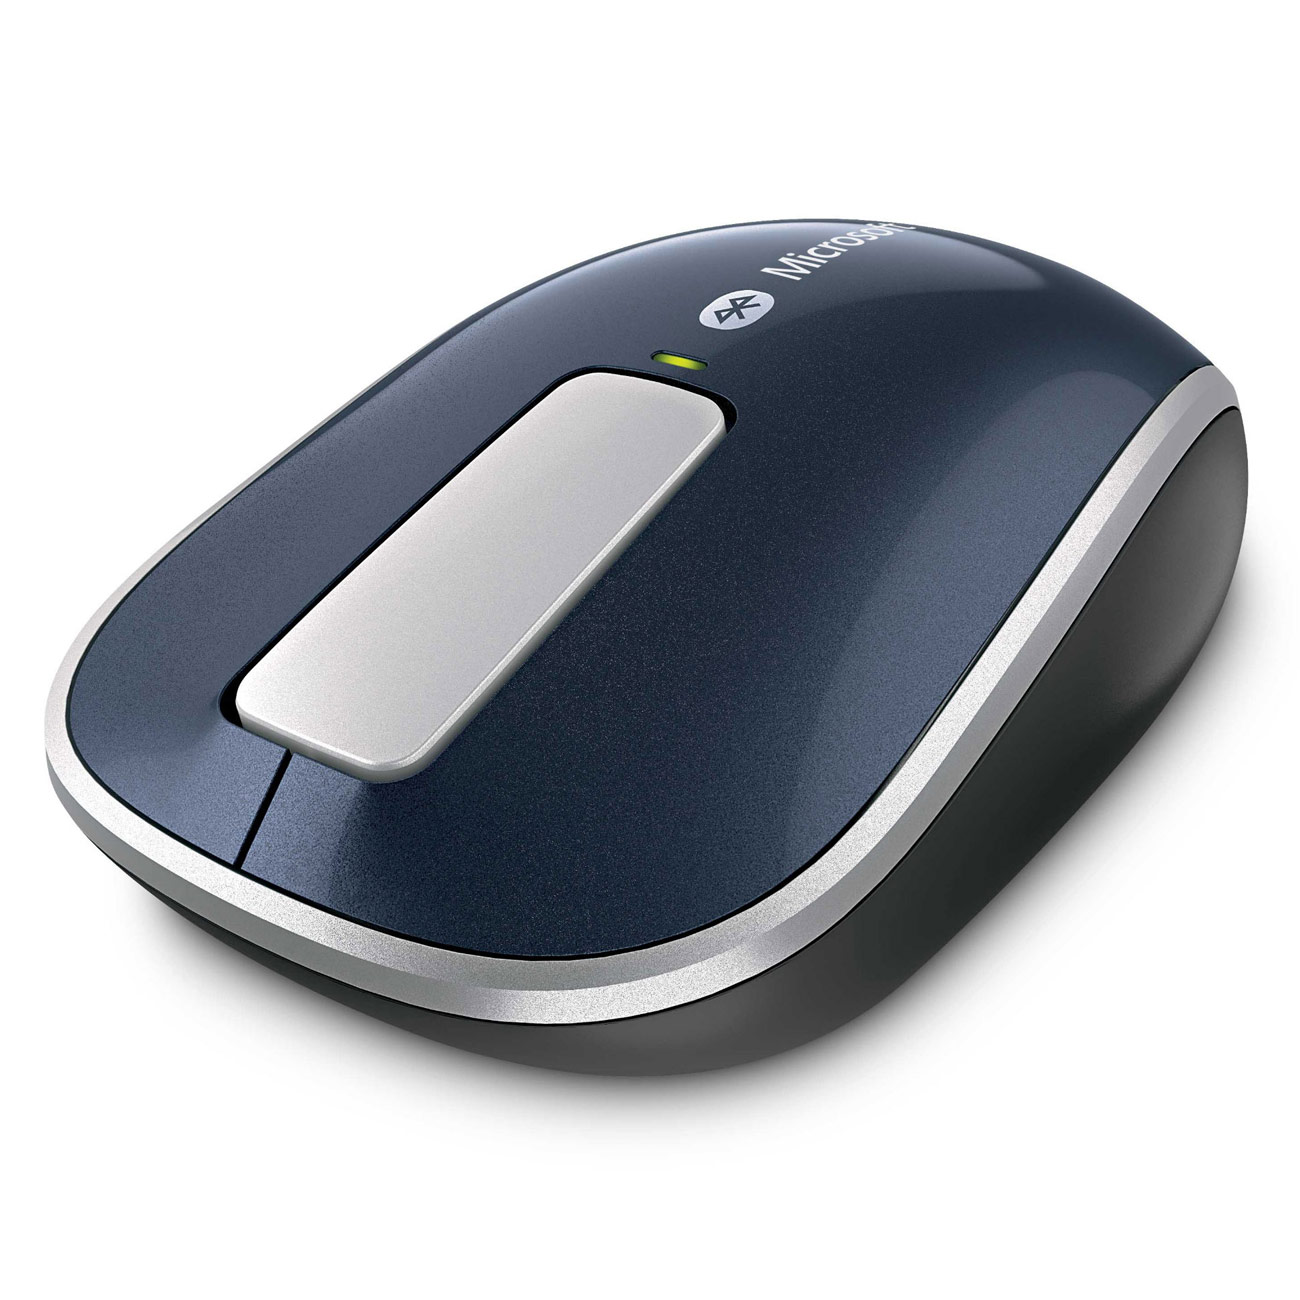 microsoft sculpt touch mouse souris pc microsoft sur. Black Bedroom Furniture Sets. Home Design Ideas